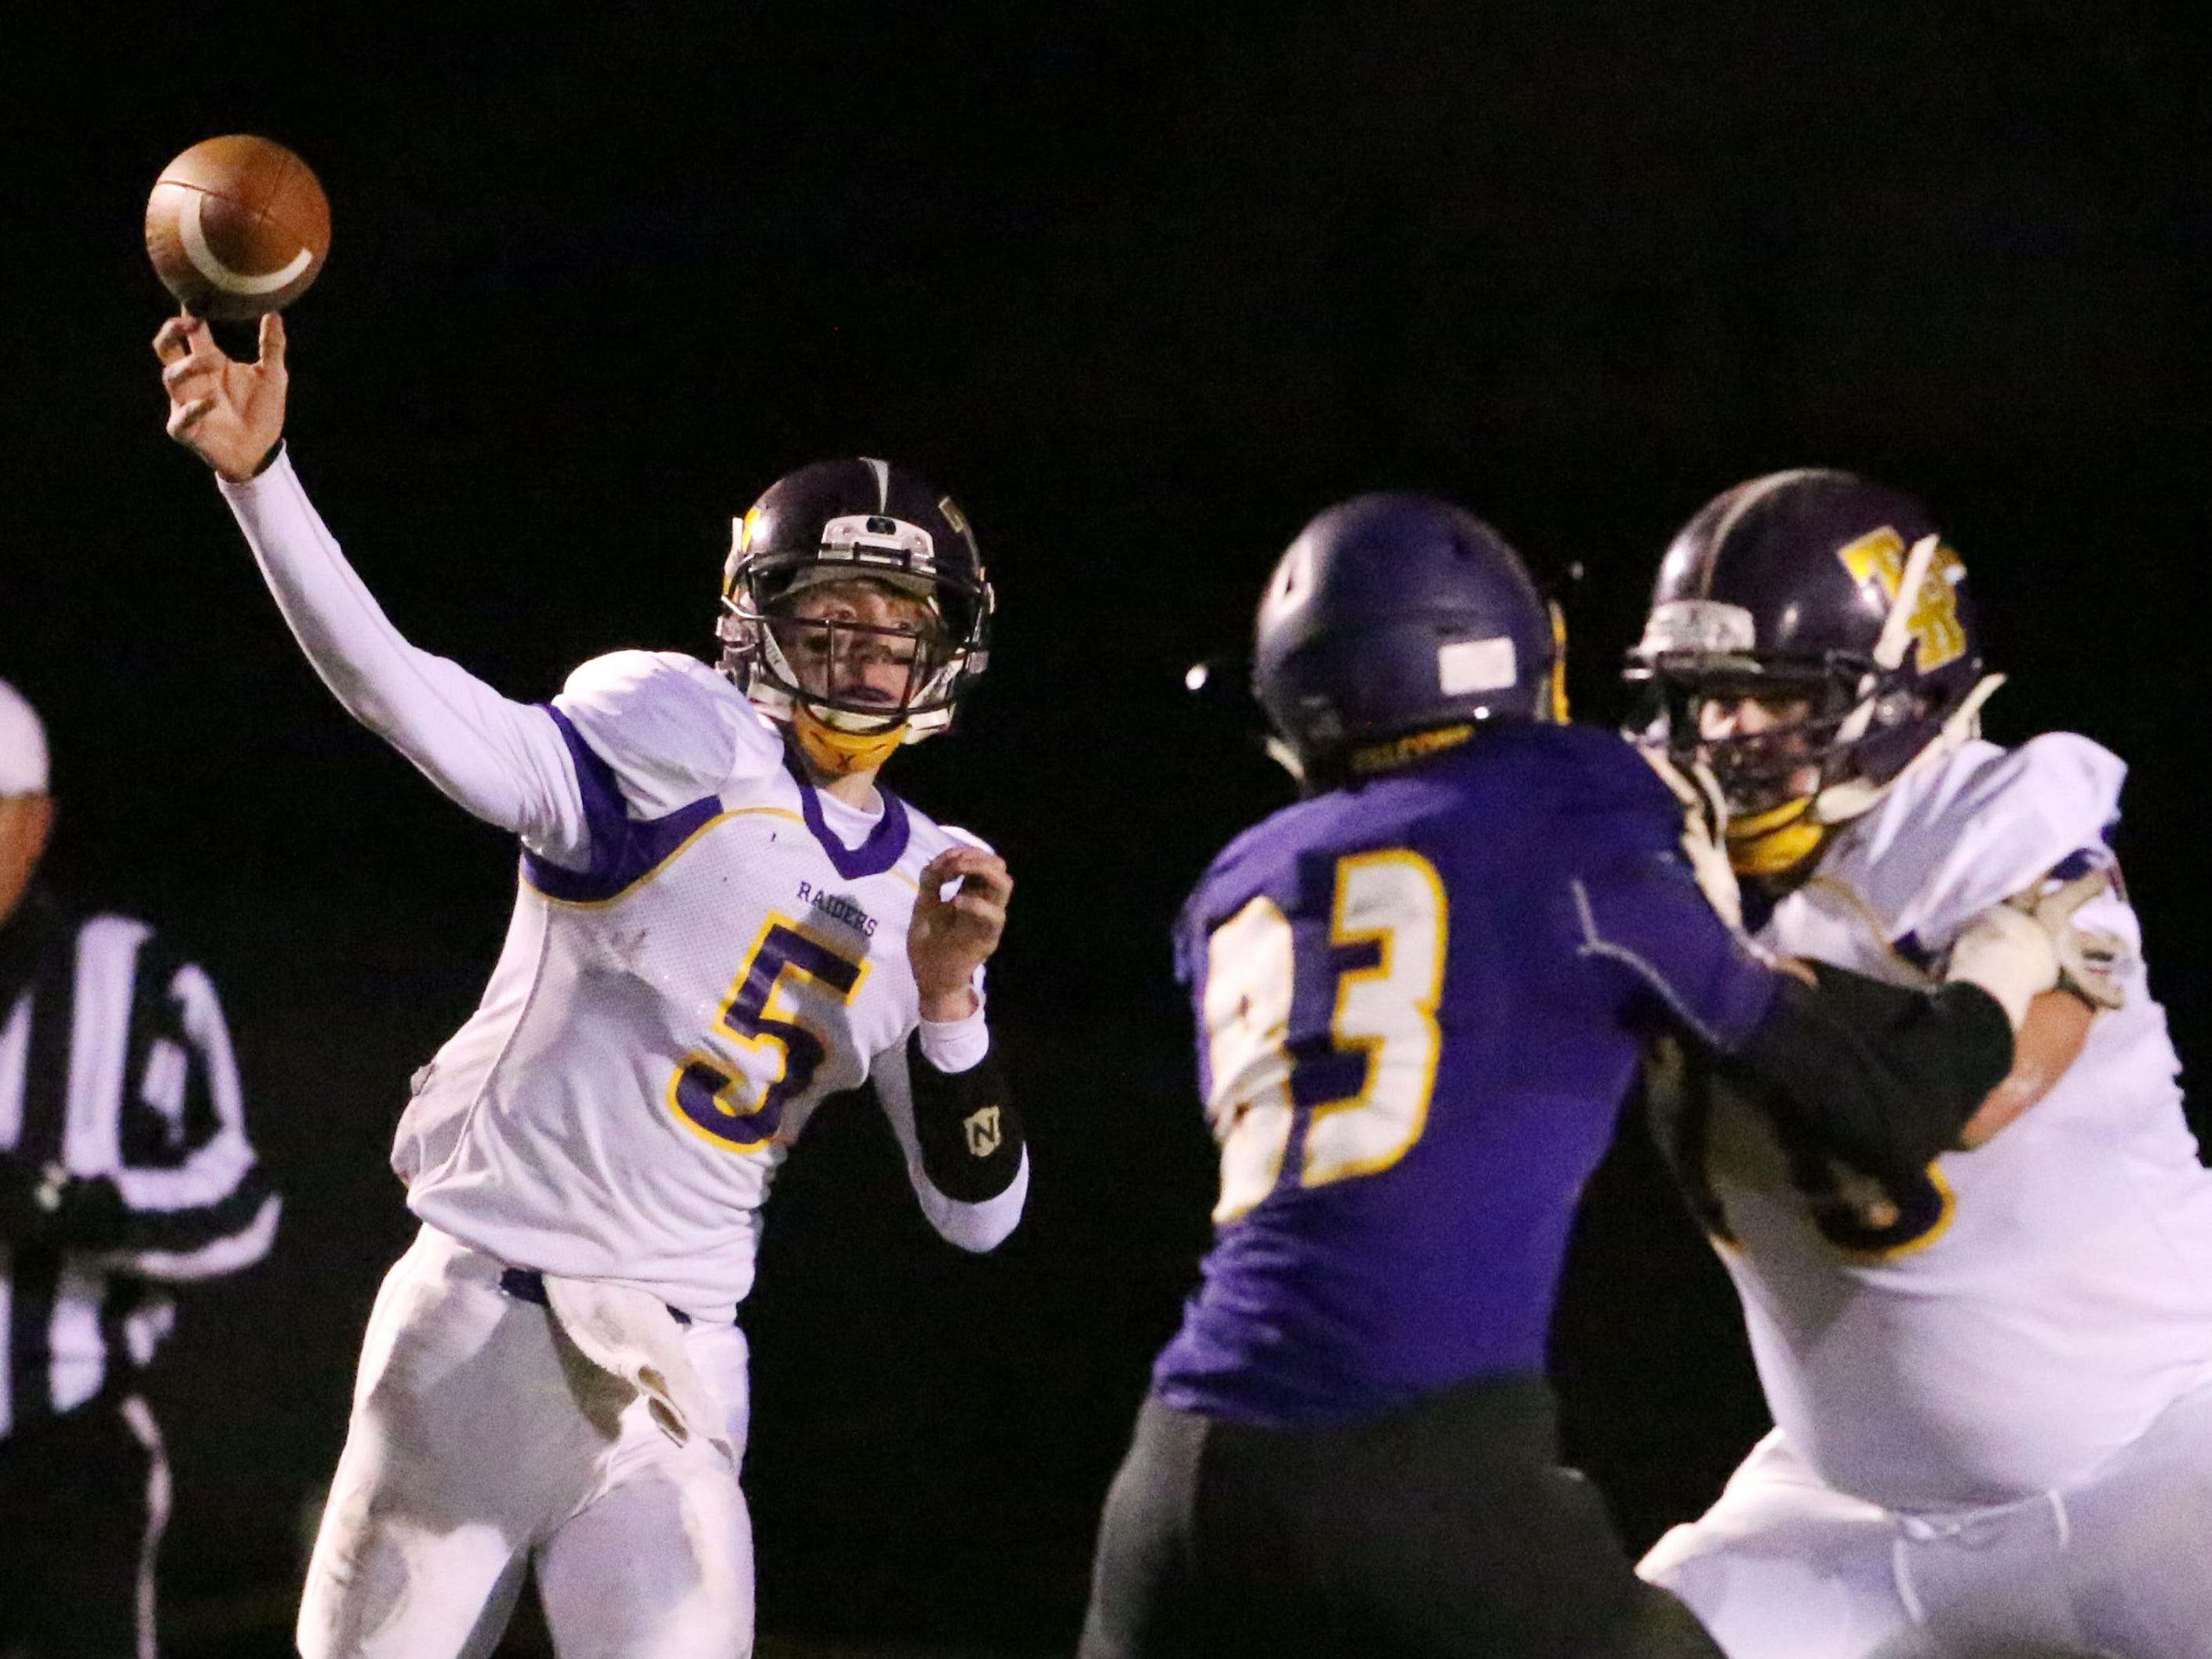 Two Rivers' Jayden Kiphart (5) passes the ball against Sheboygan Falls, Friday, October 12, 2018, in Sheboygan Falls, Wis.